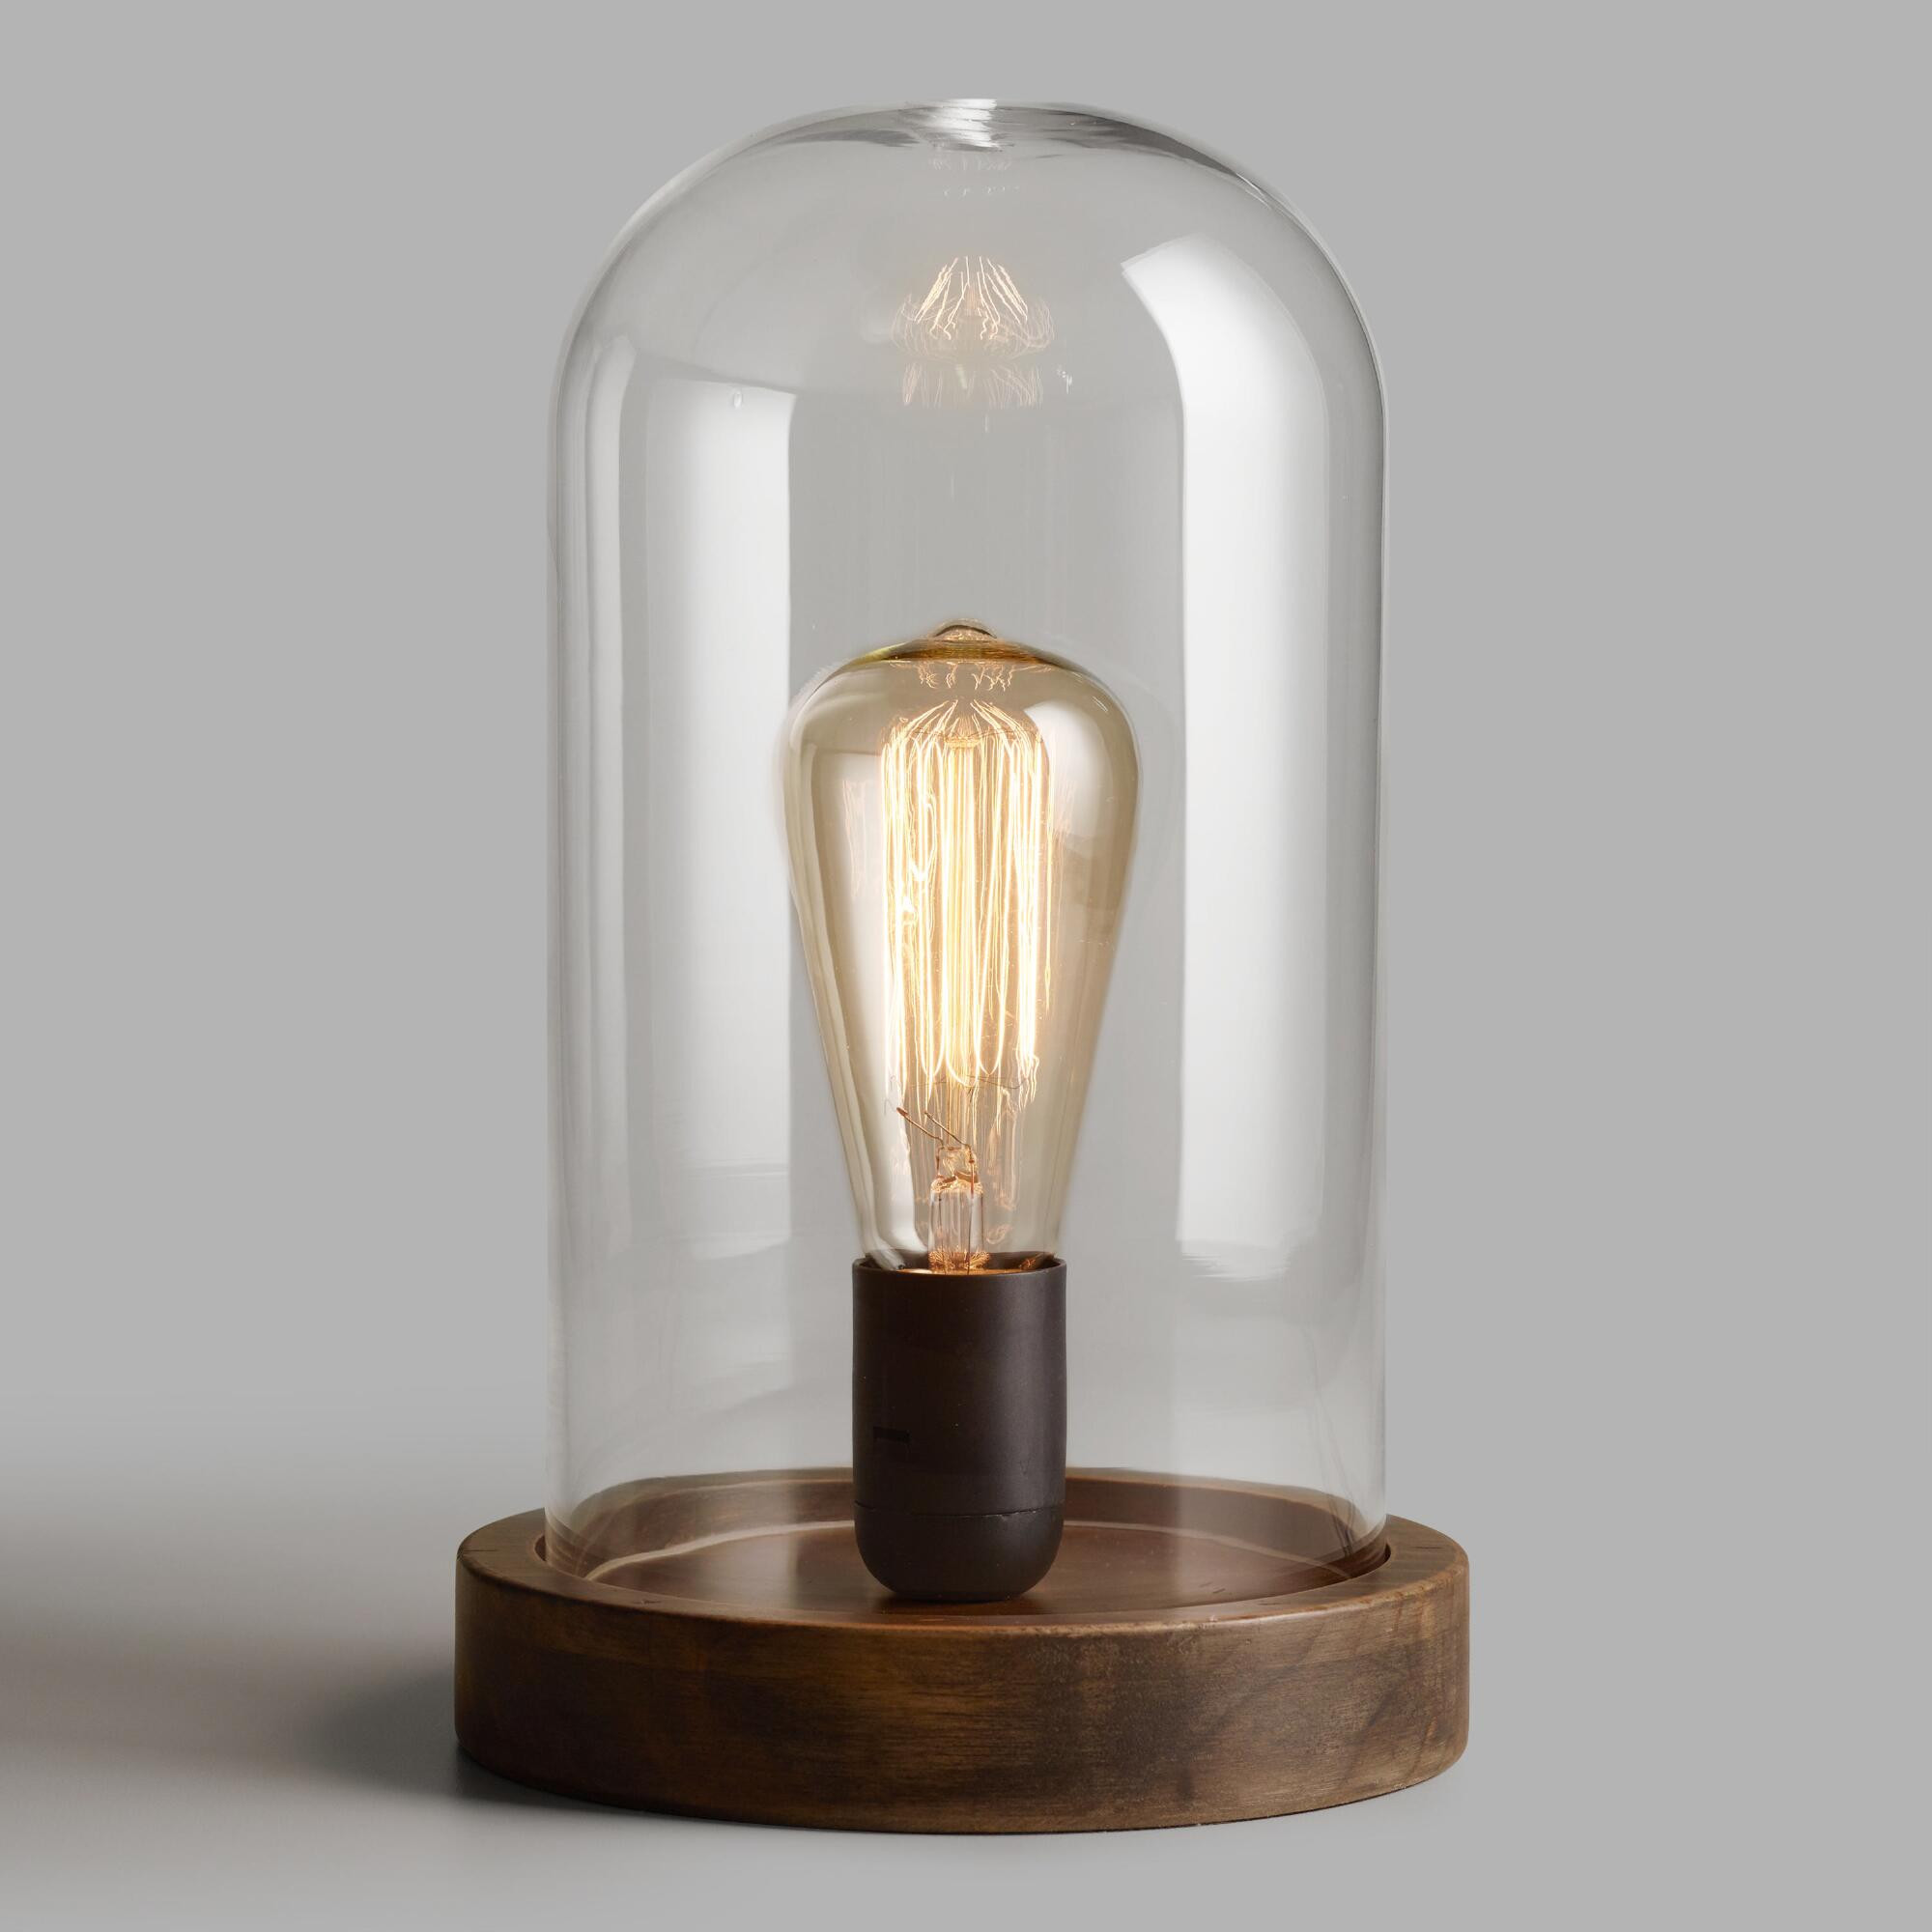 Best ideas about Edison Desk Lamp . Save or Pin Edison Glass Cloche Table Lamp Now.